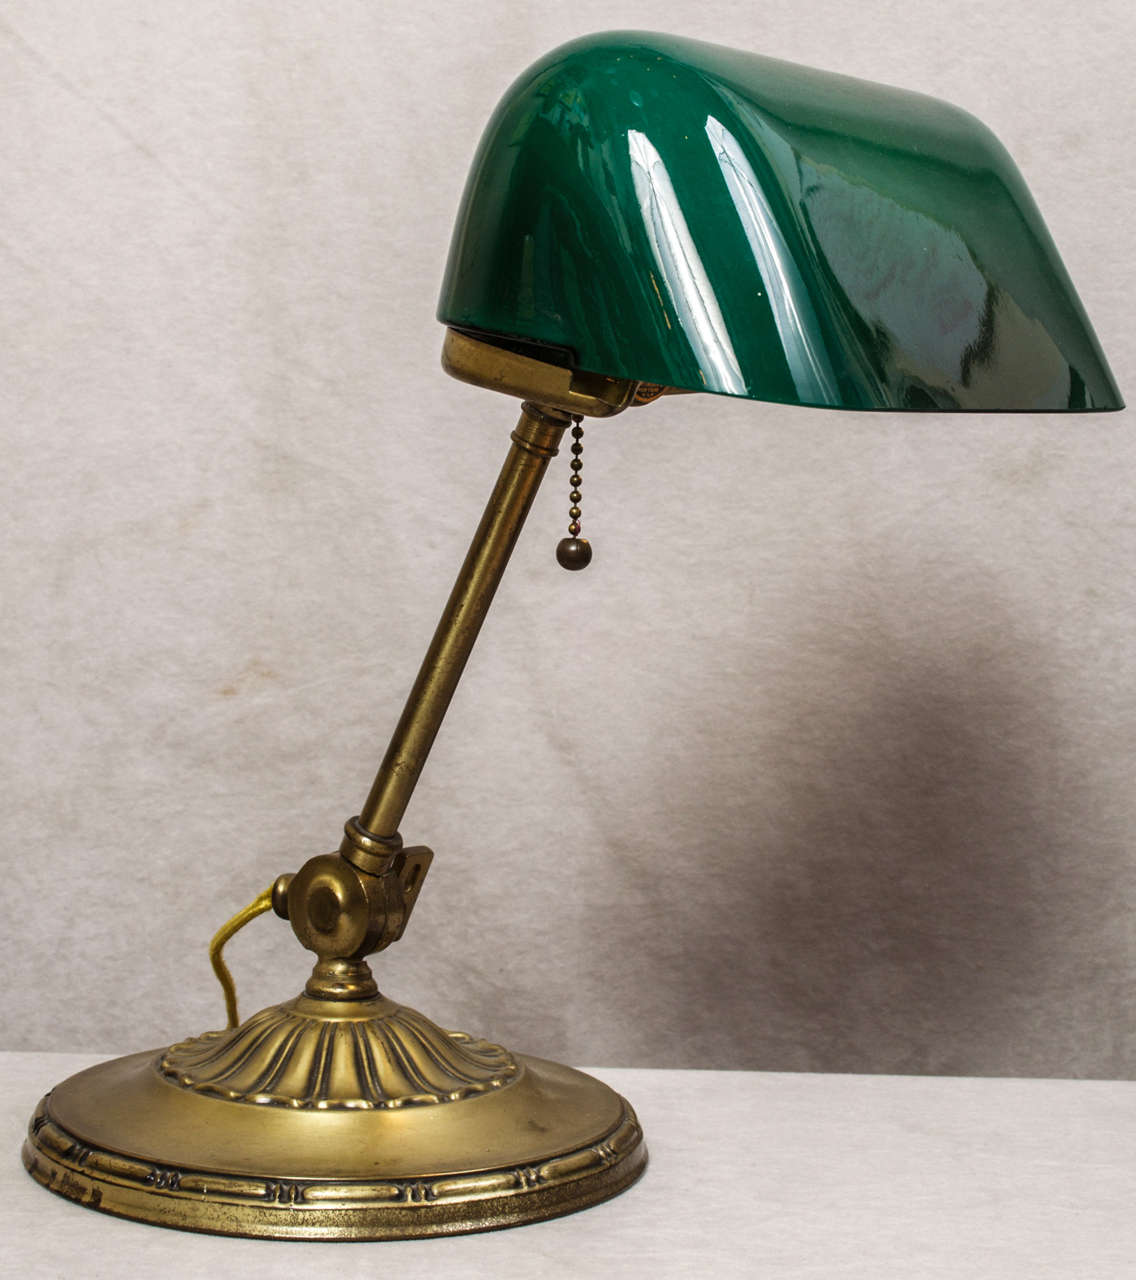 banker 39 s lamp with green cased glass shade at 1stdibs. Black Bedroom Furniture Sets. Home Design Ideas